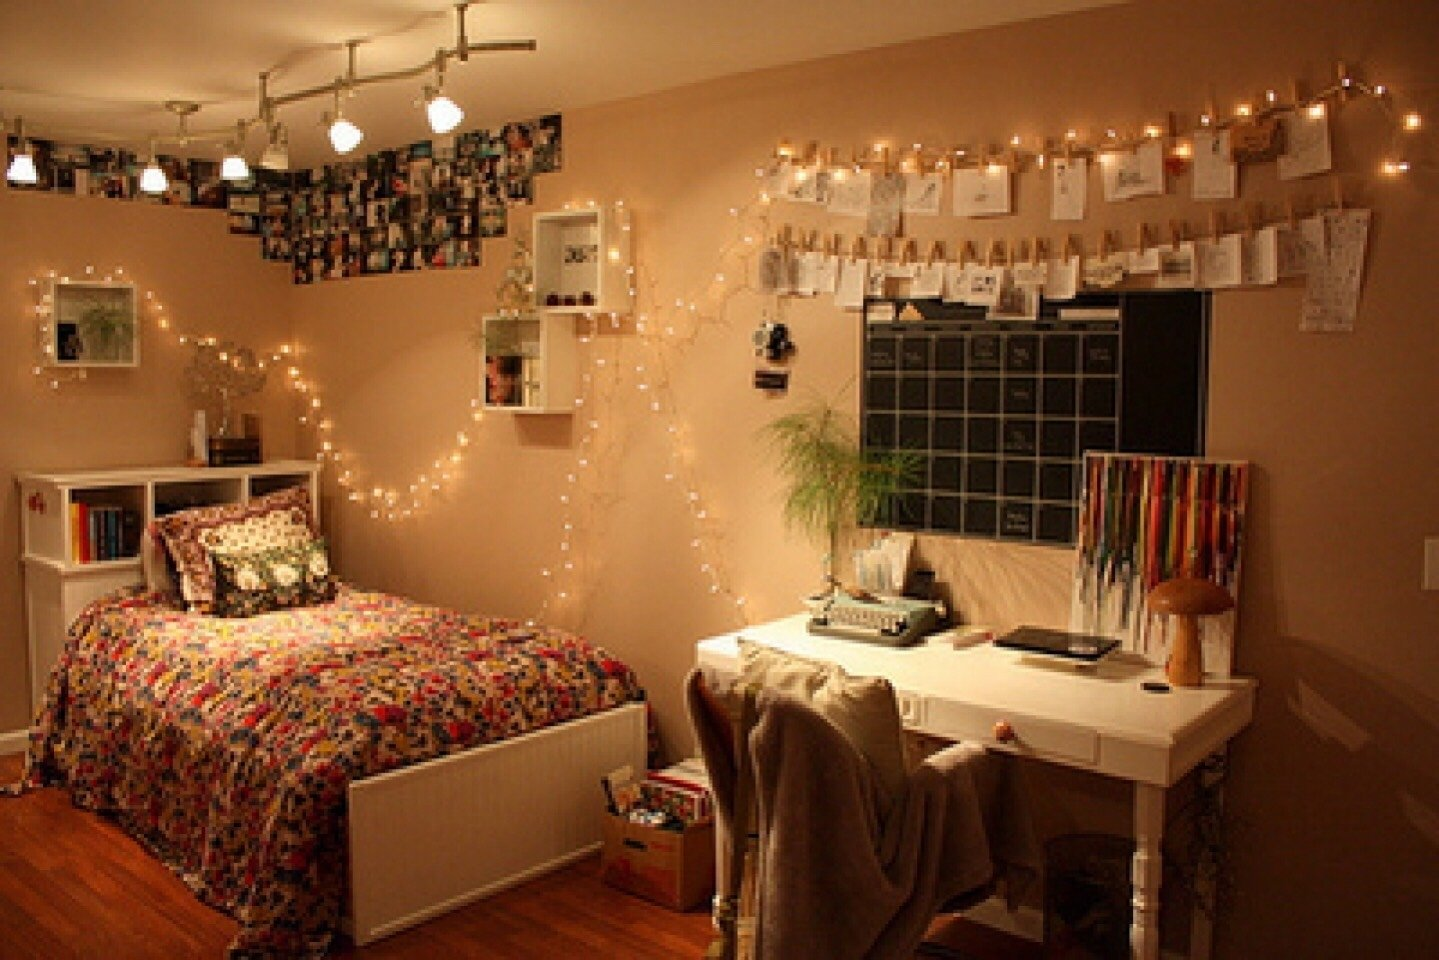 10 Cute Cute Ideas For Your Room good ways to decorate your room redecor your home decoration with 2020